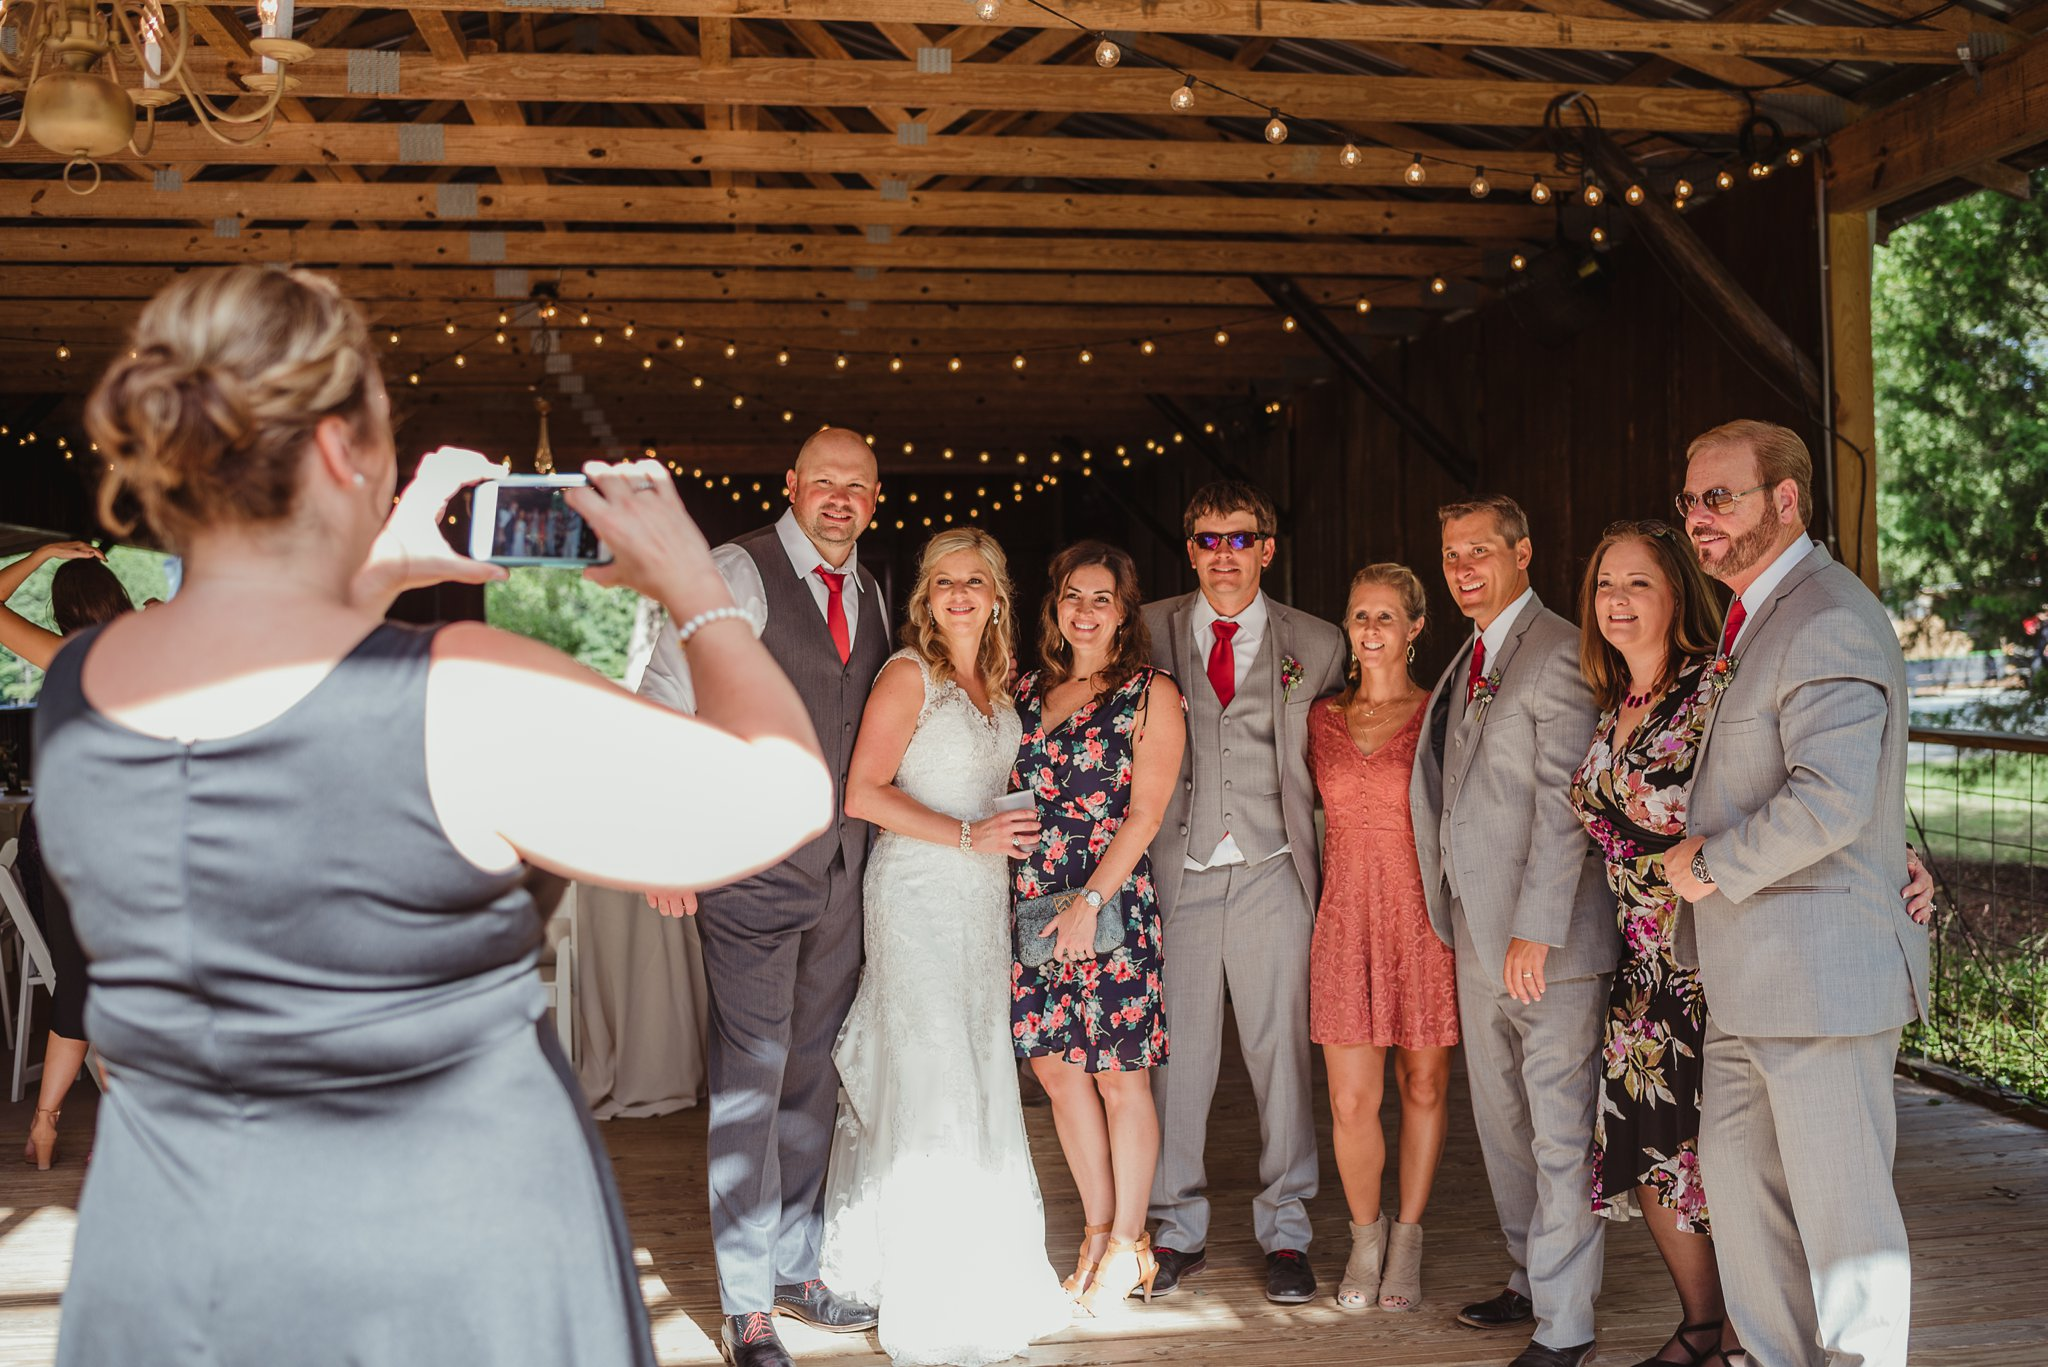 The bride and groom share a picture with friends during their wedding reception at Cedar Grove Acres near Raleigh, pictures by Rose Trail Images.